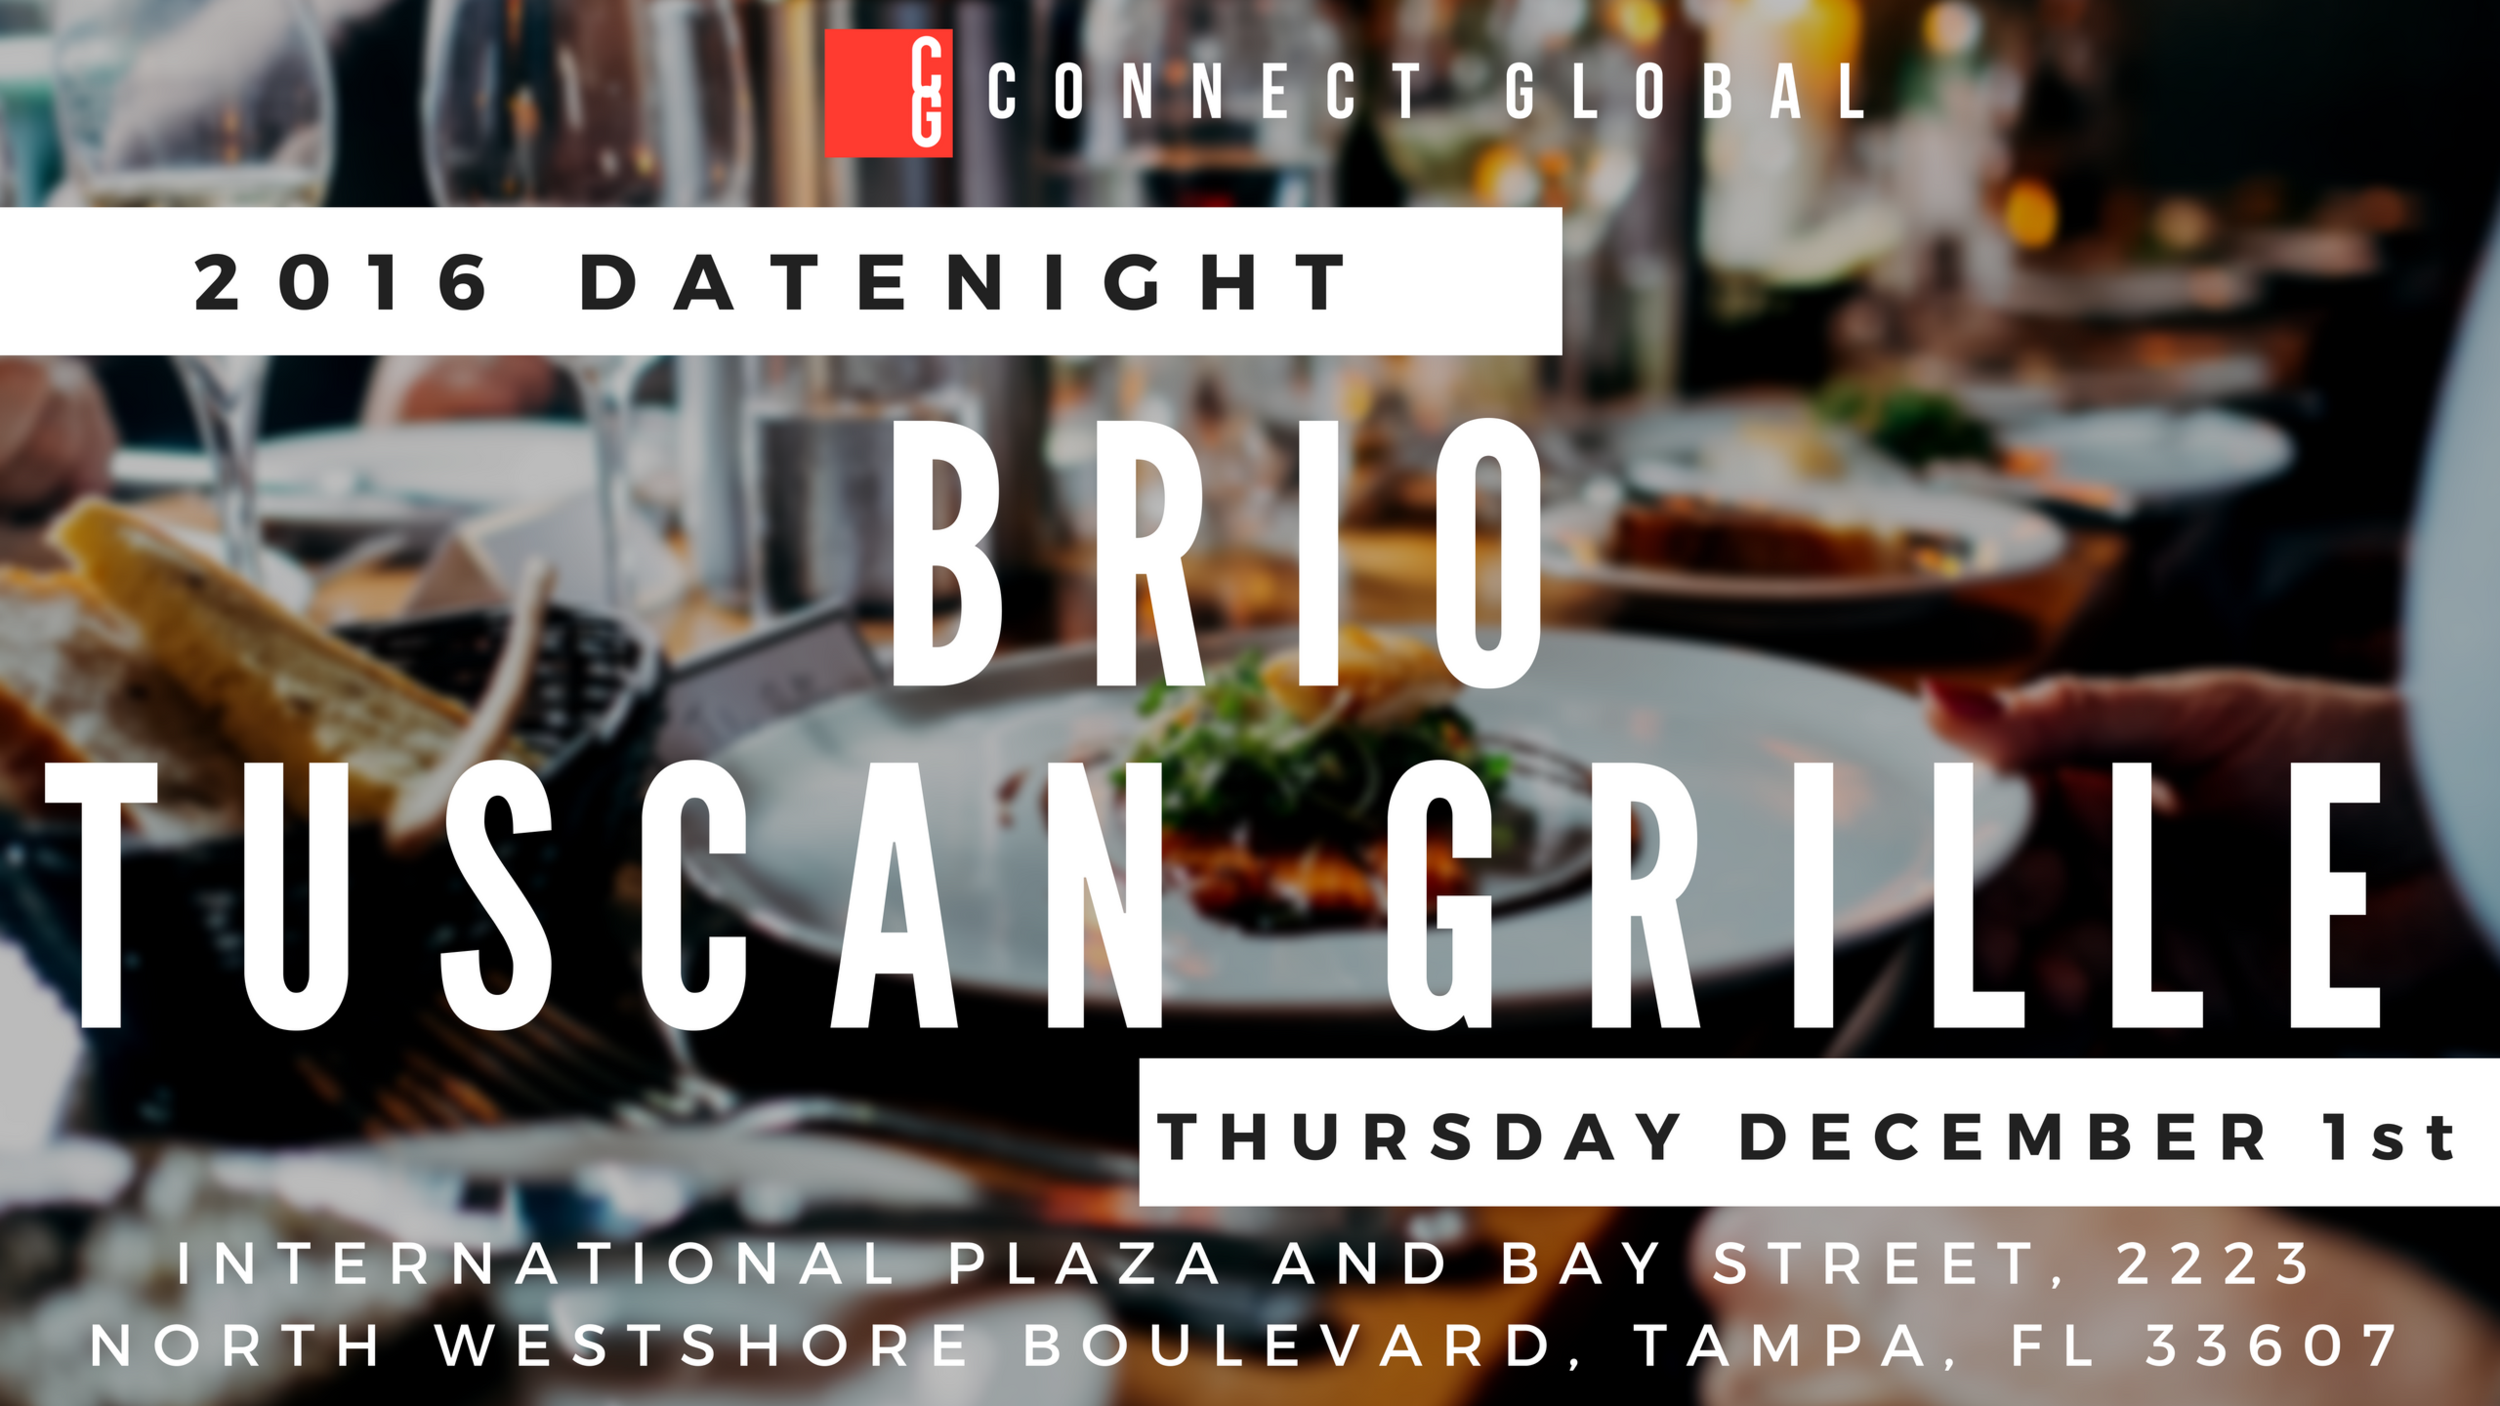 Connect Global DateNight 2016 - December 1st